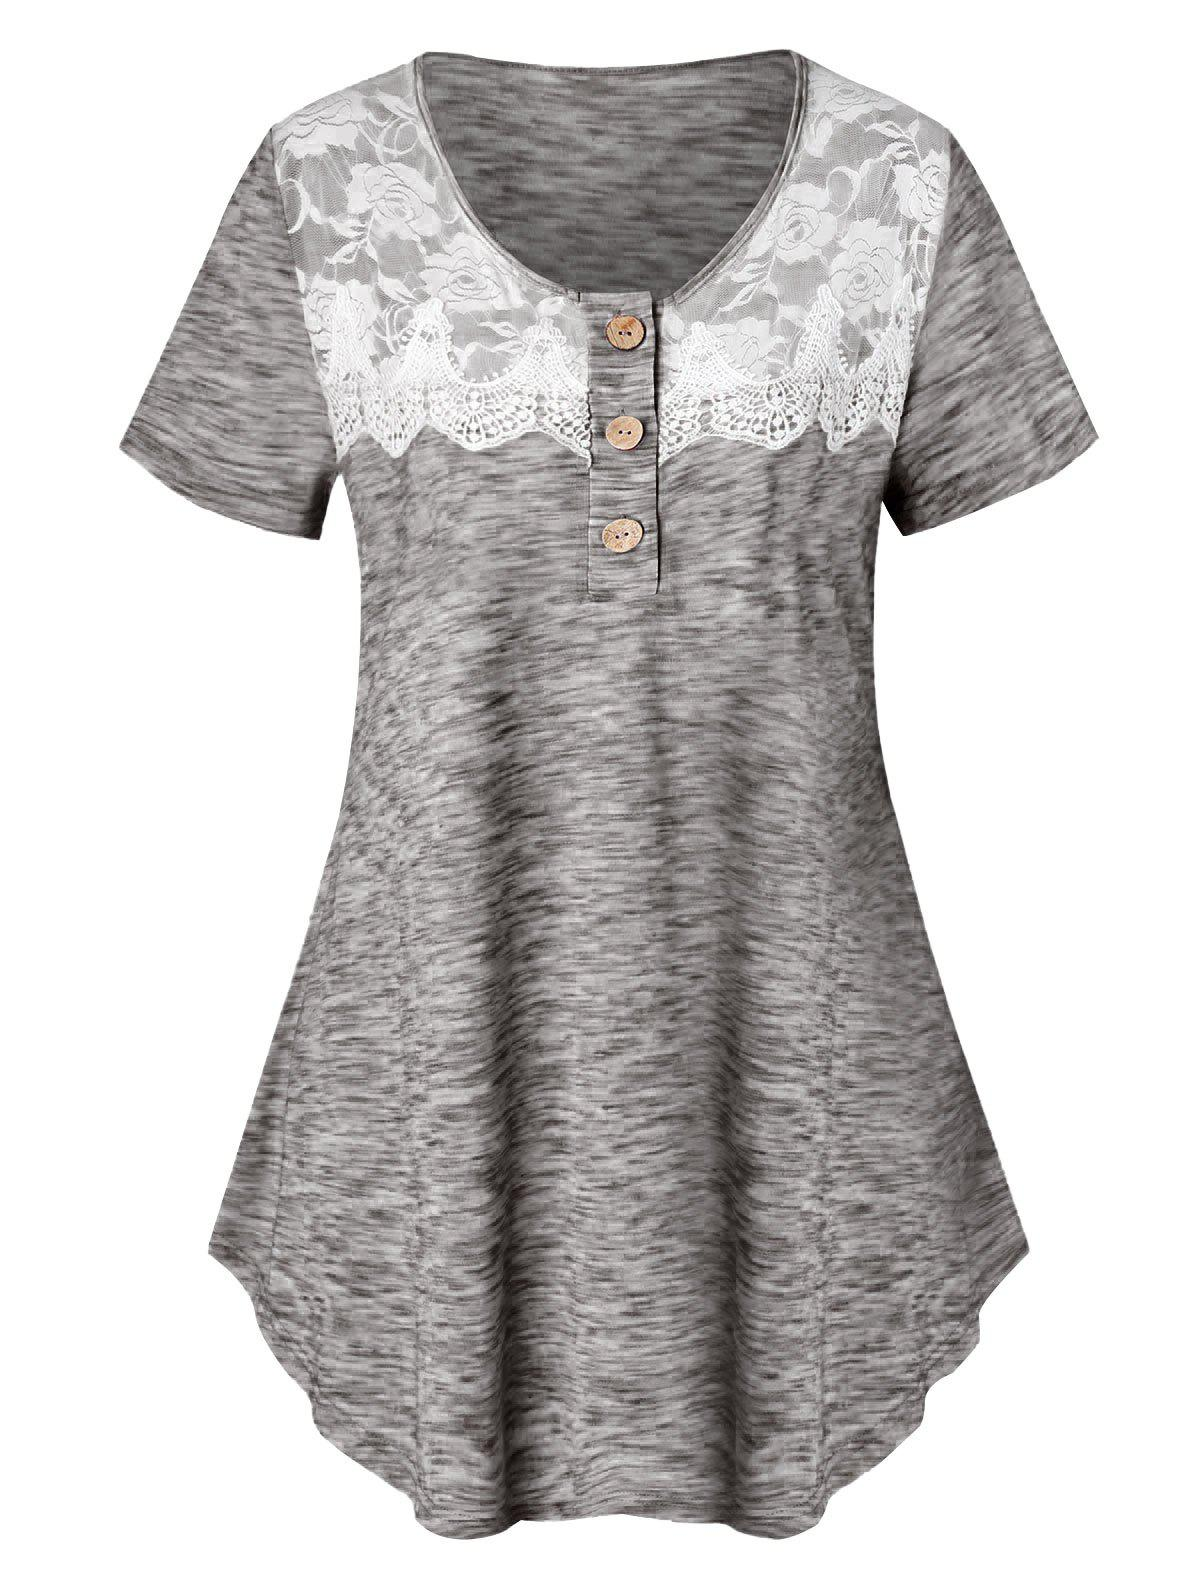 Plus Size Lace Insert Marled T Shirt - BATTLESHIP GRAY 1X